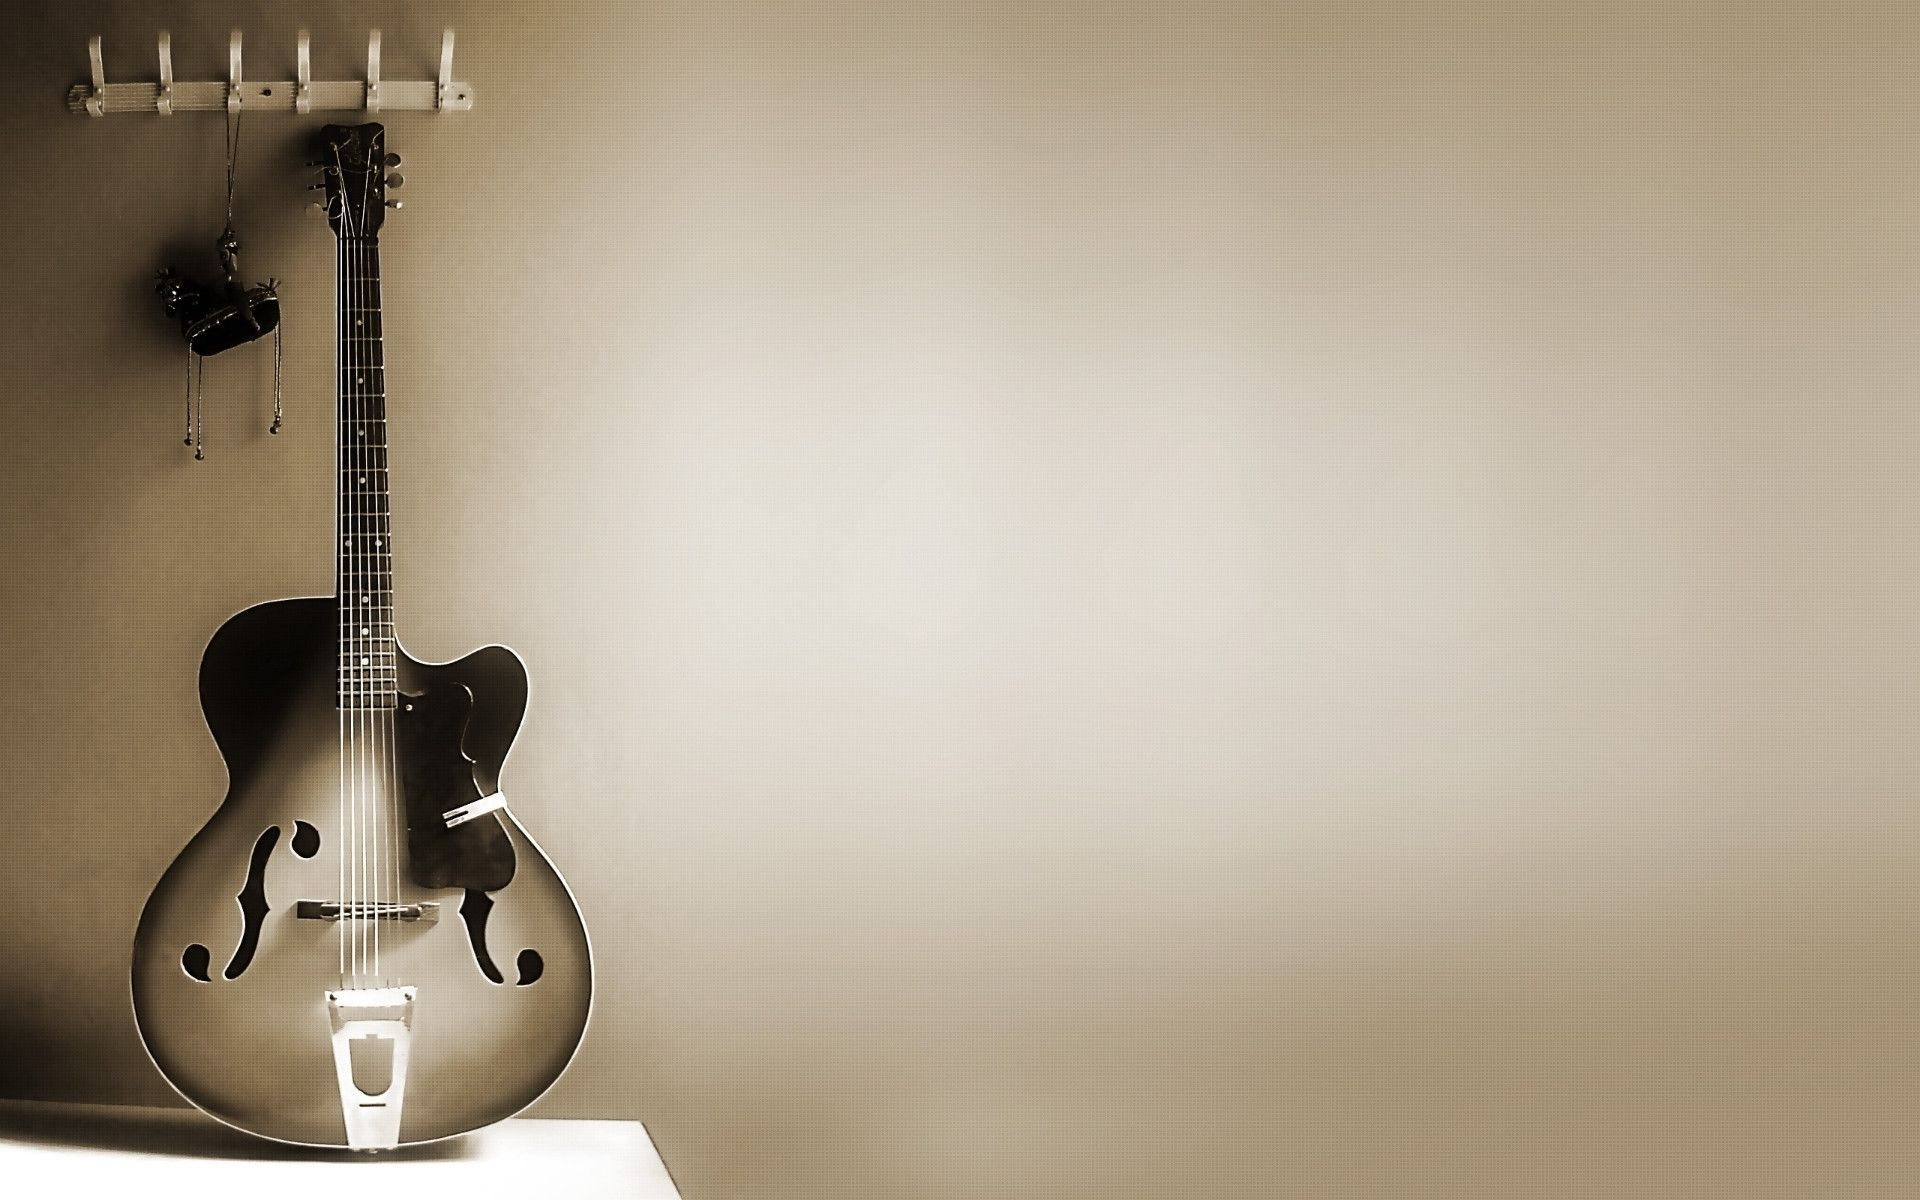 Image: Guitars, strings, wall, grey background